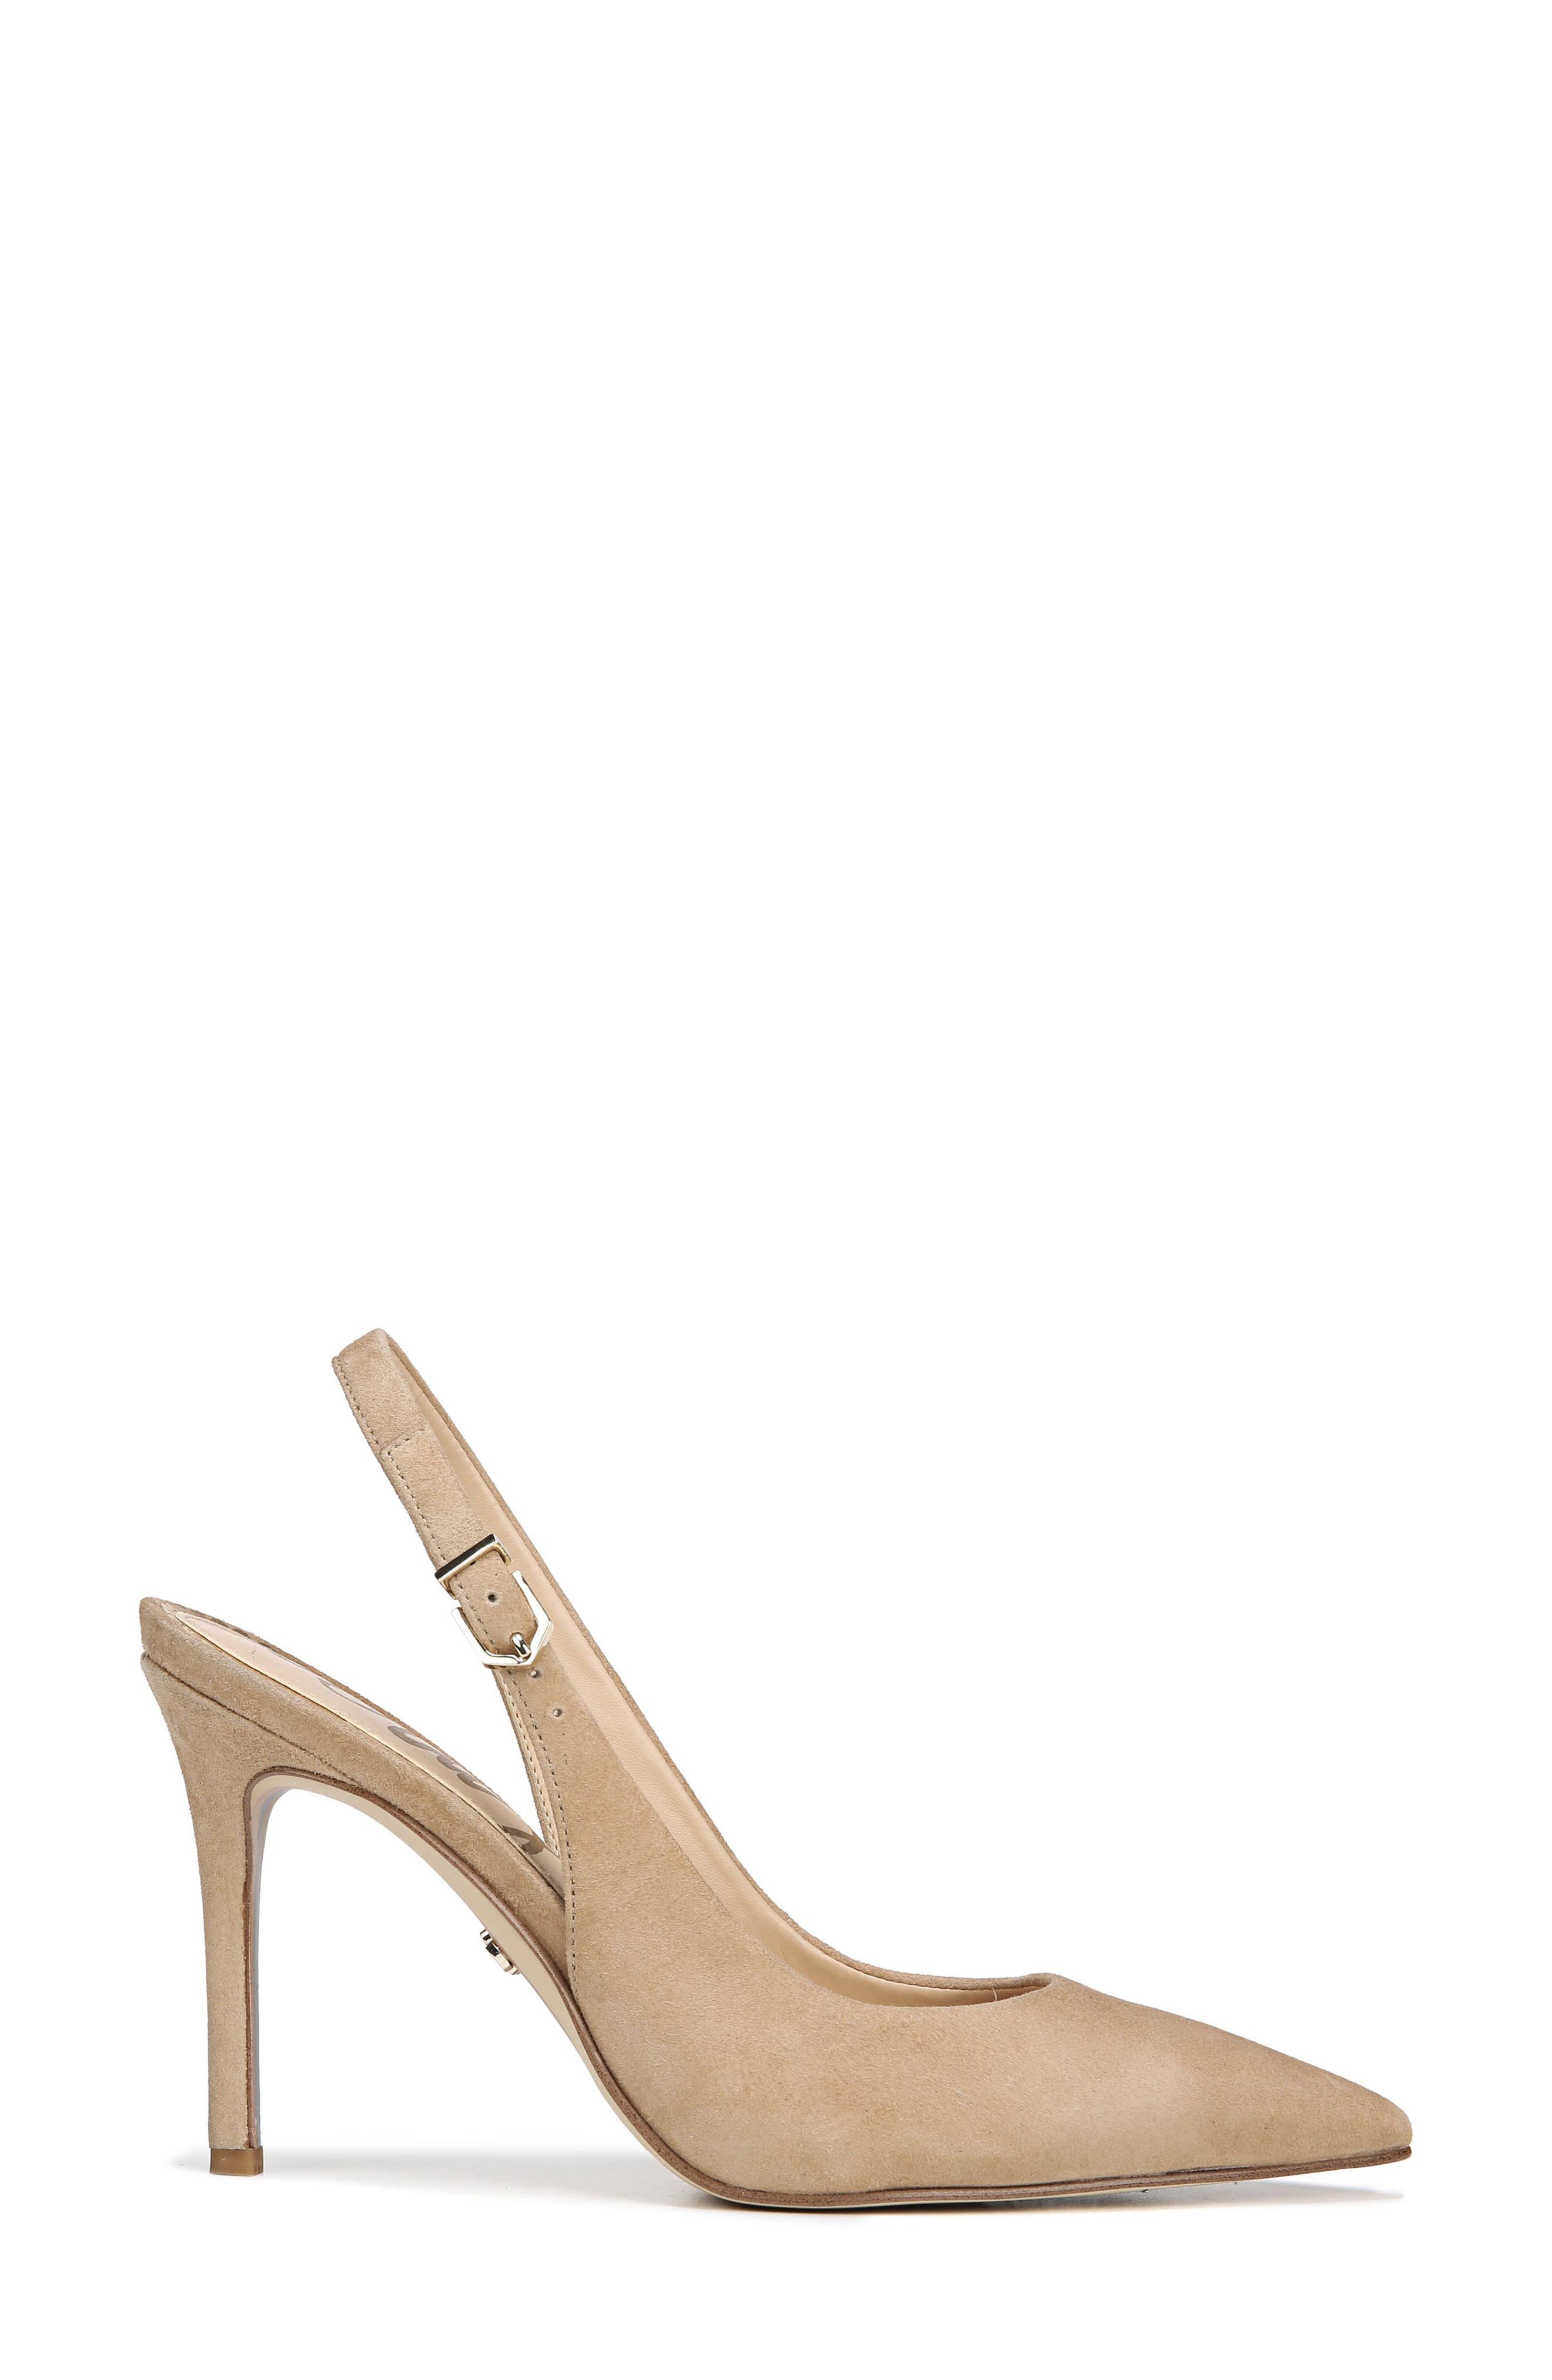 Hastings Slingback Pump,                             Alternate thumbnail 3, color,                             OATMEAL SUEDE LEATHER